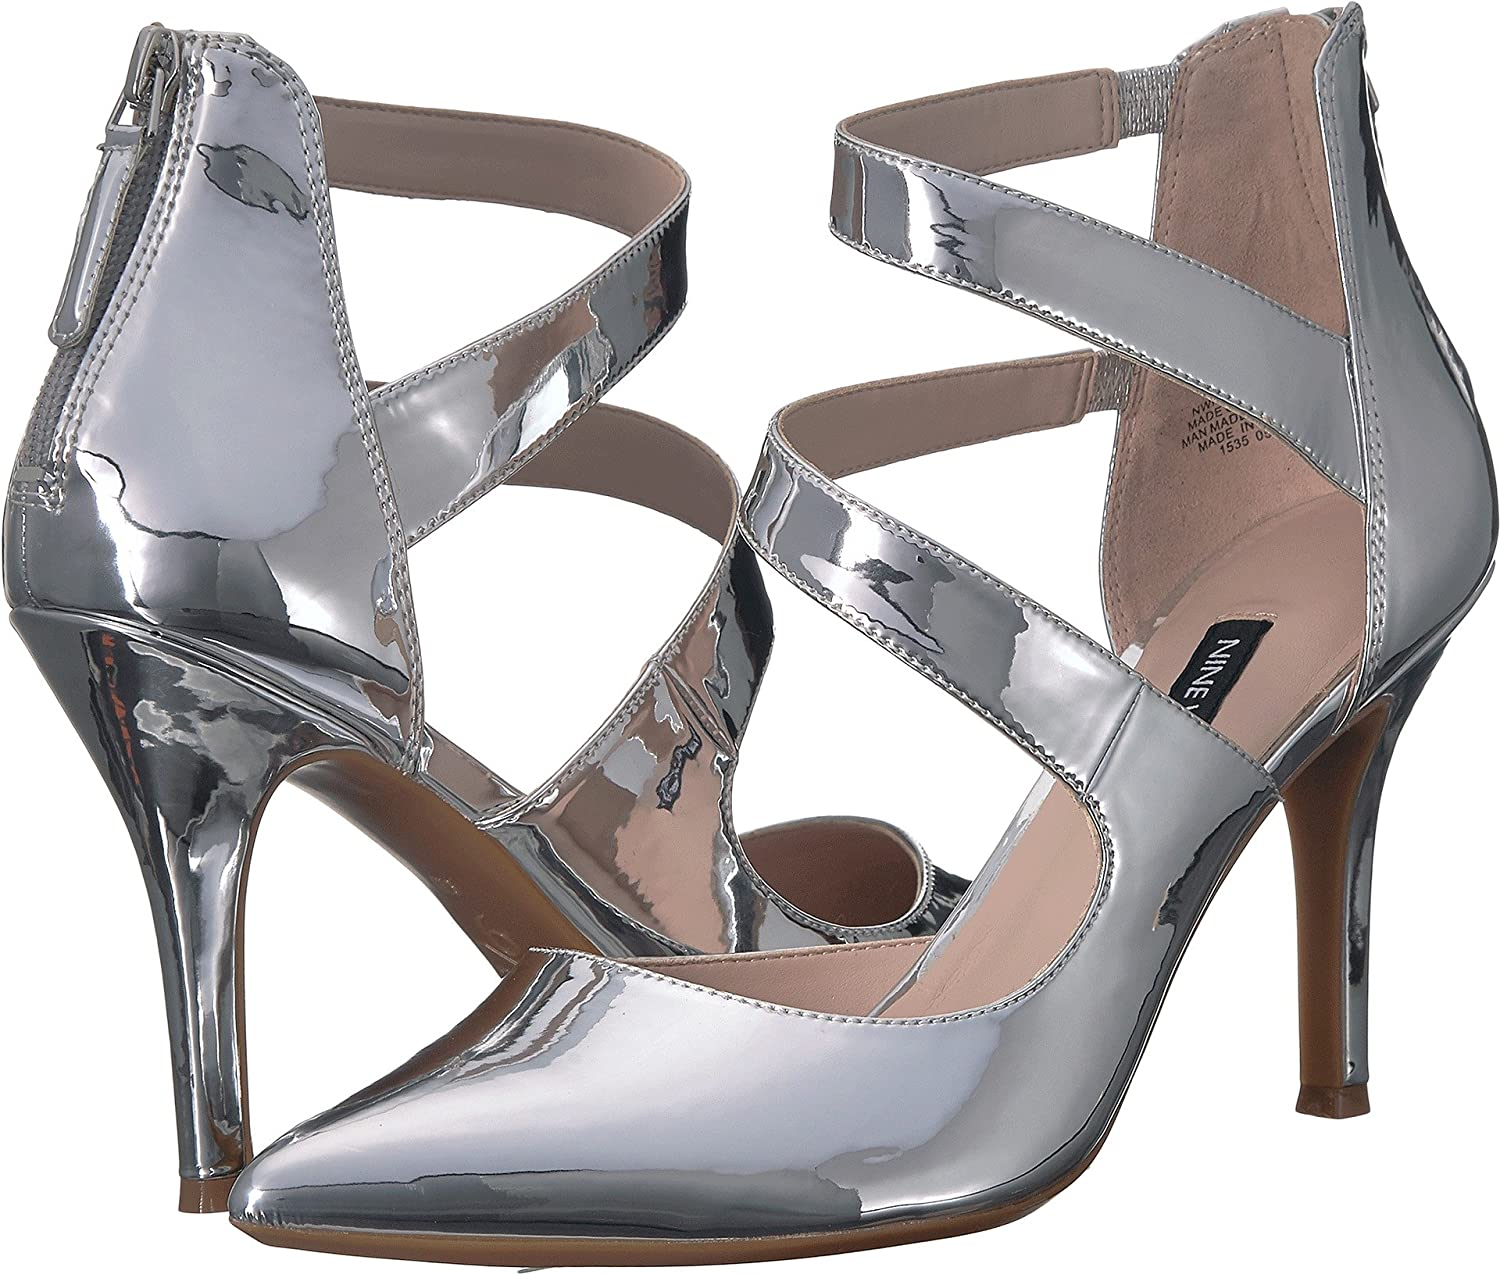 Nine West Women's Florent Pump B07D3TFW4Z 11 B(M) US|Silver Synthetic